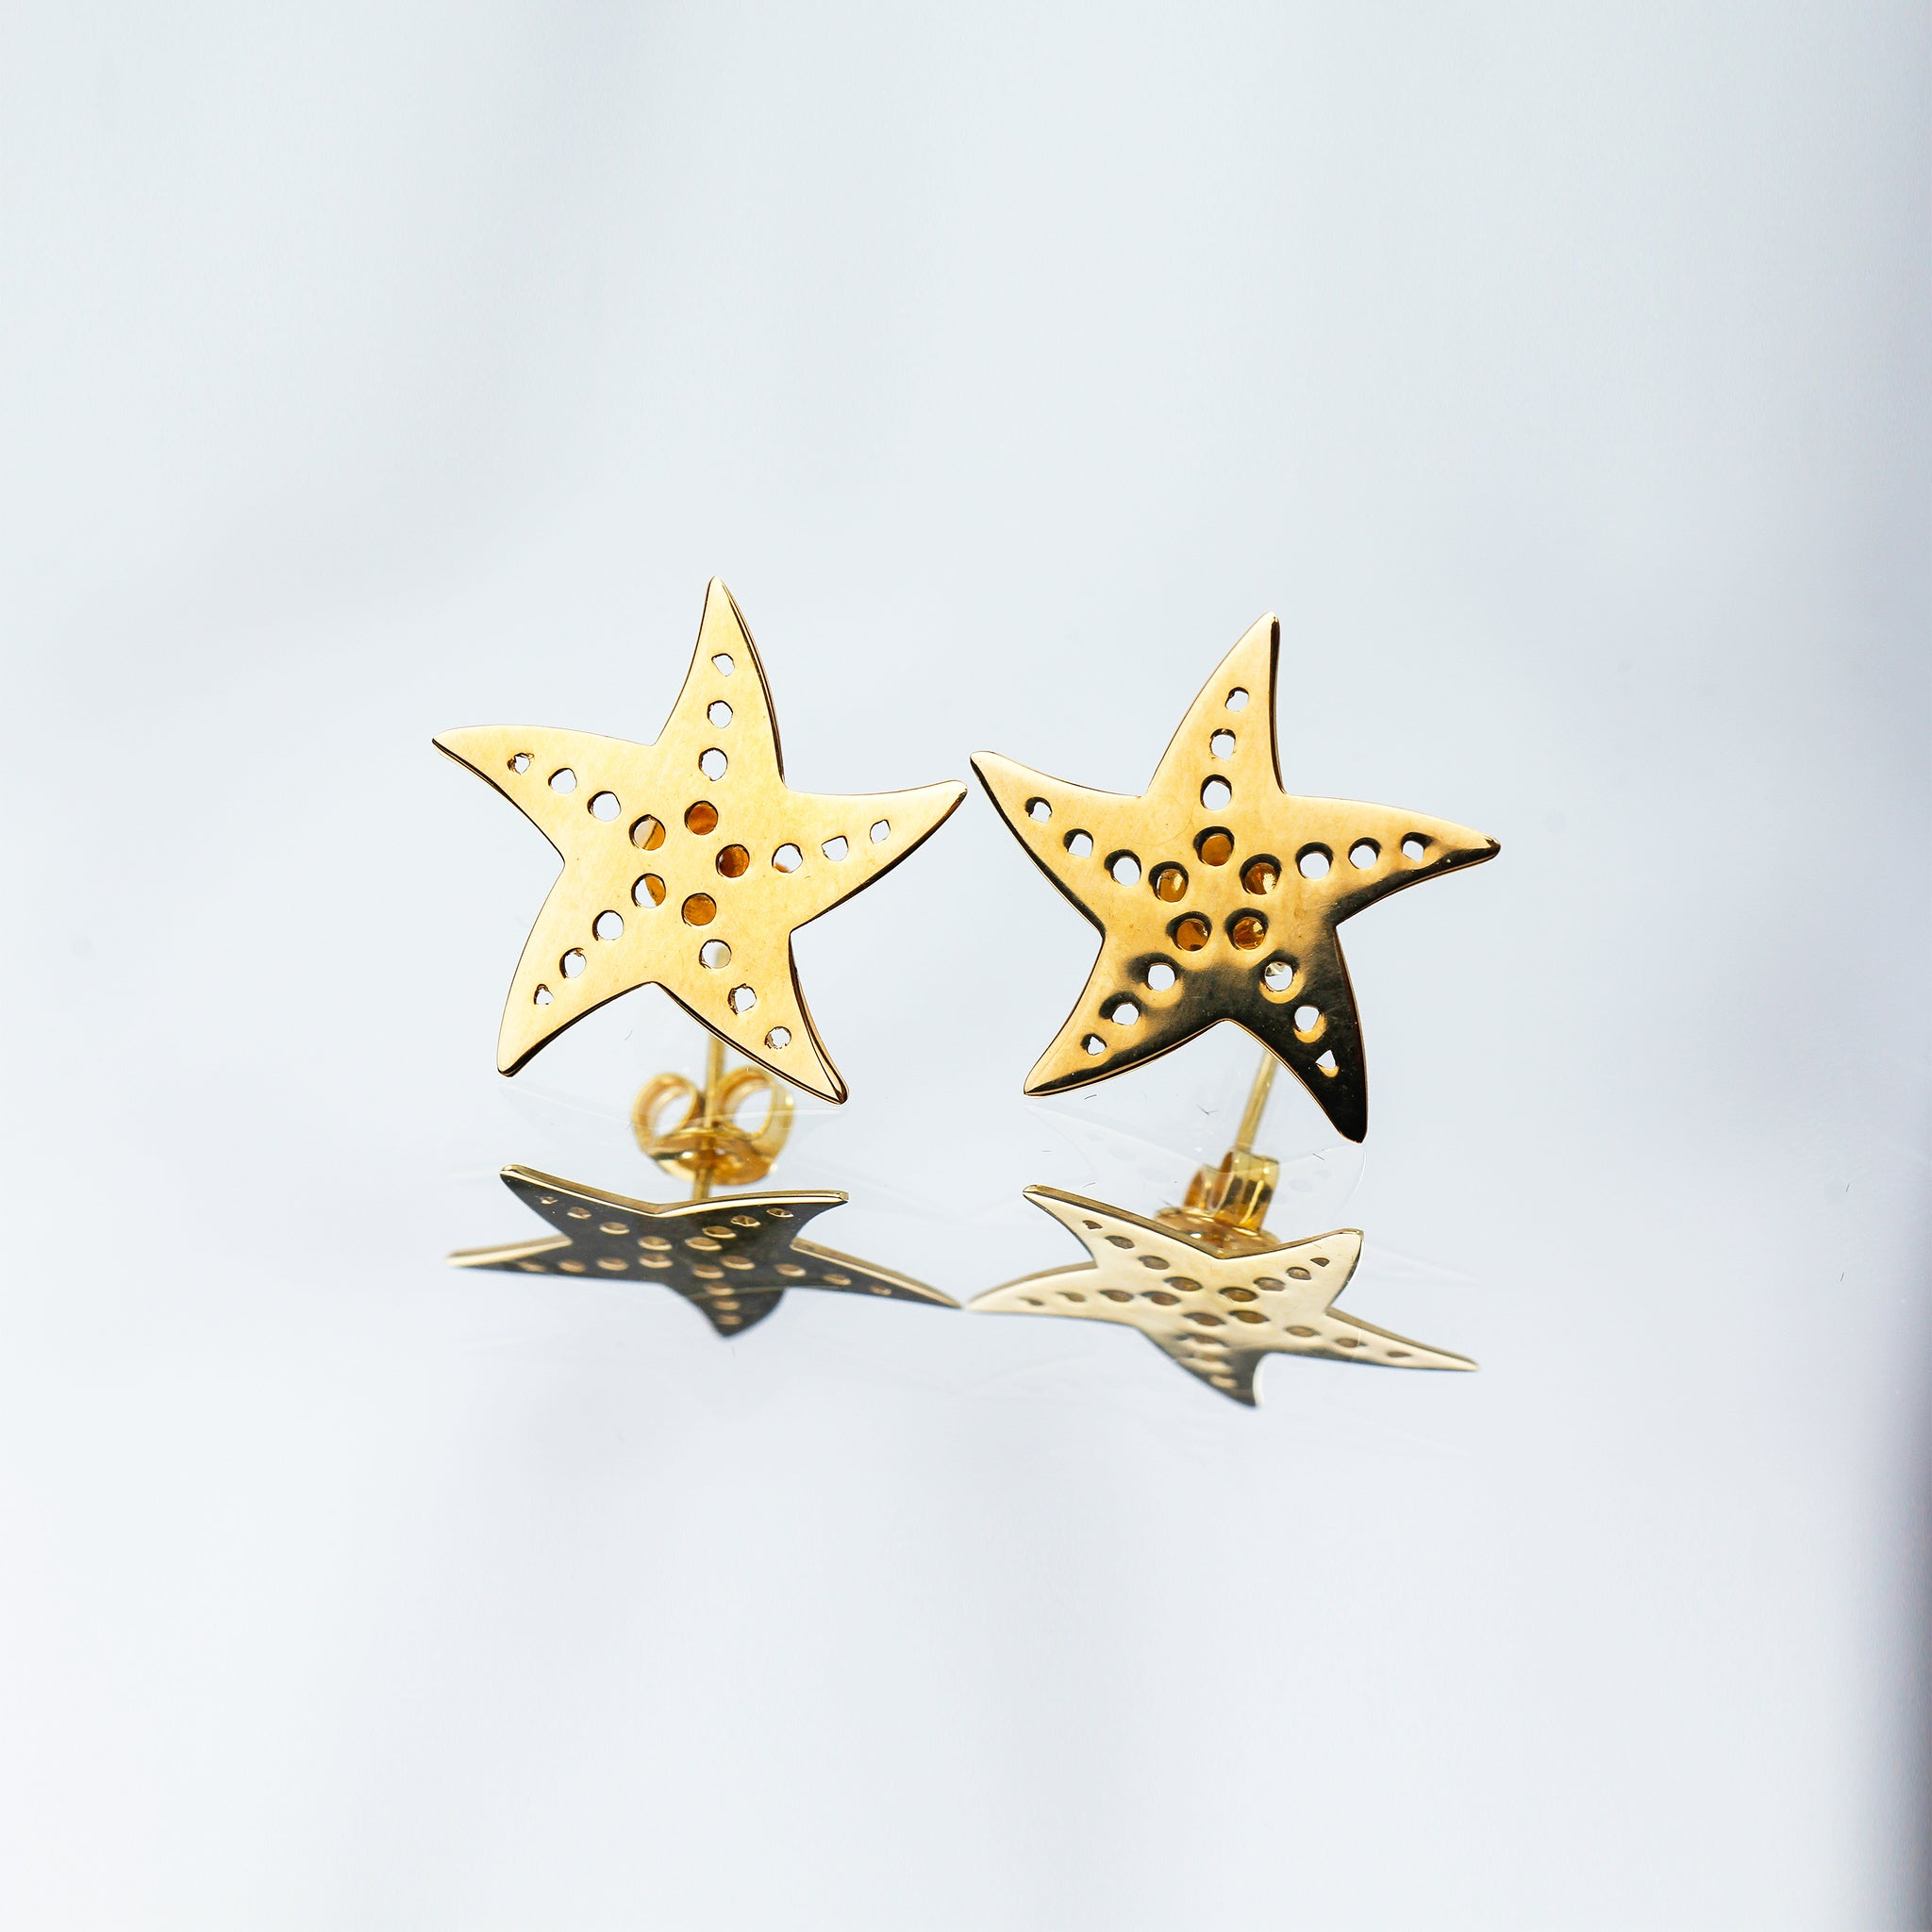 Millié Jewelry - Millié Jewelry - Starfish Mini Earrings - Aretes - Diseño Mexicano - Hecho en México